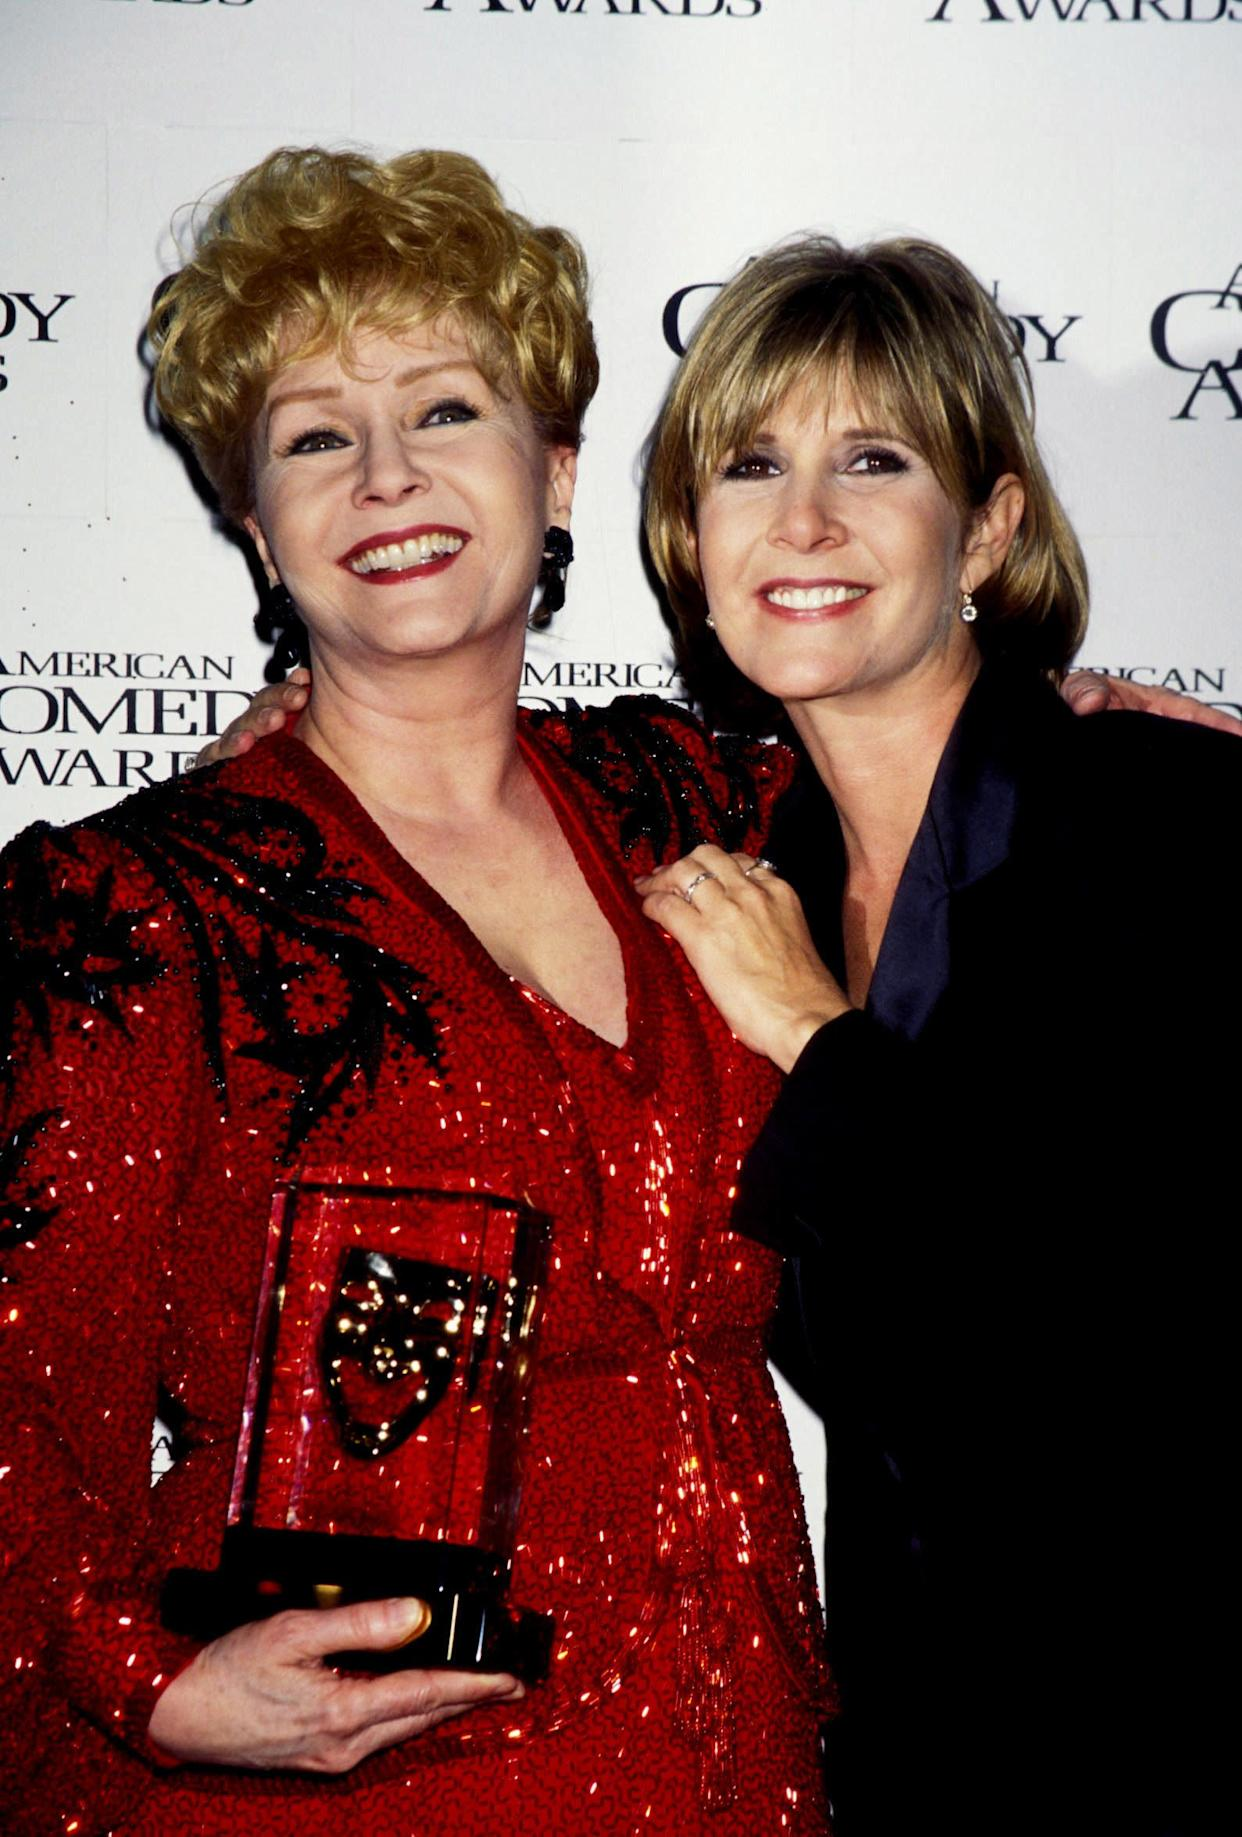 Debbie Reynolds and Carrie Fisher at the11th Annual American Comedy Awards at the Shrine Auditorium in Los Angeles in 1997.